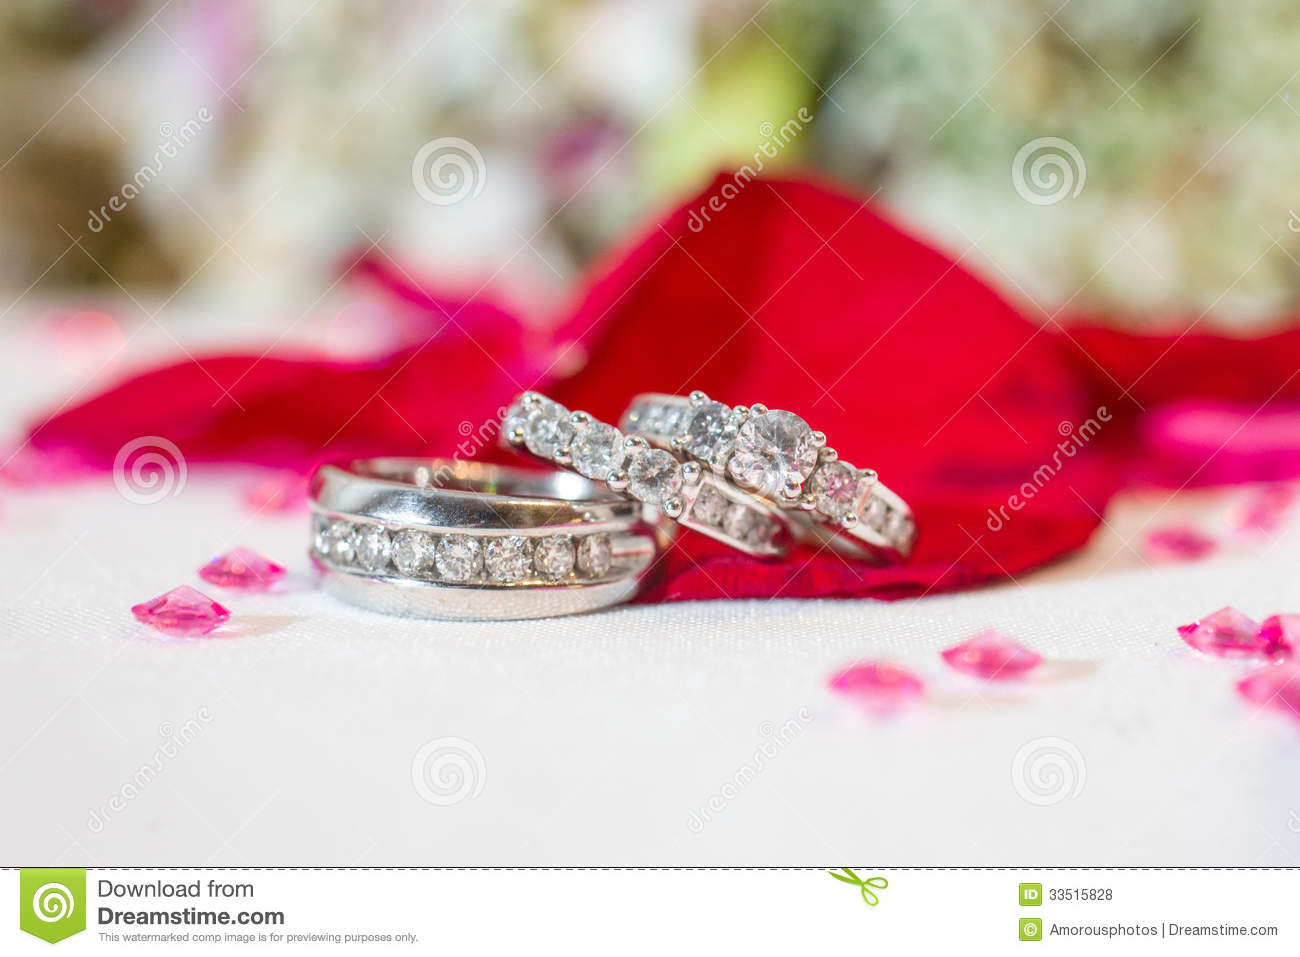 stock photography silver wedding rings pair diamond white studio background image silver wedding ring Silver wedding rings Royalty Free Stock Photos